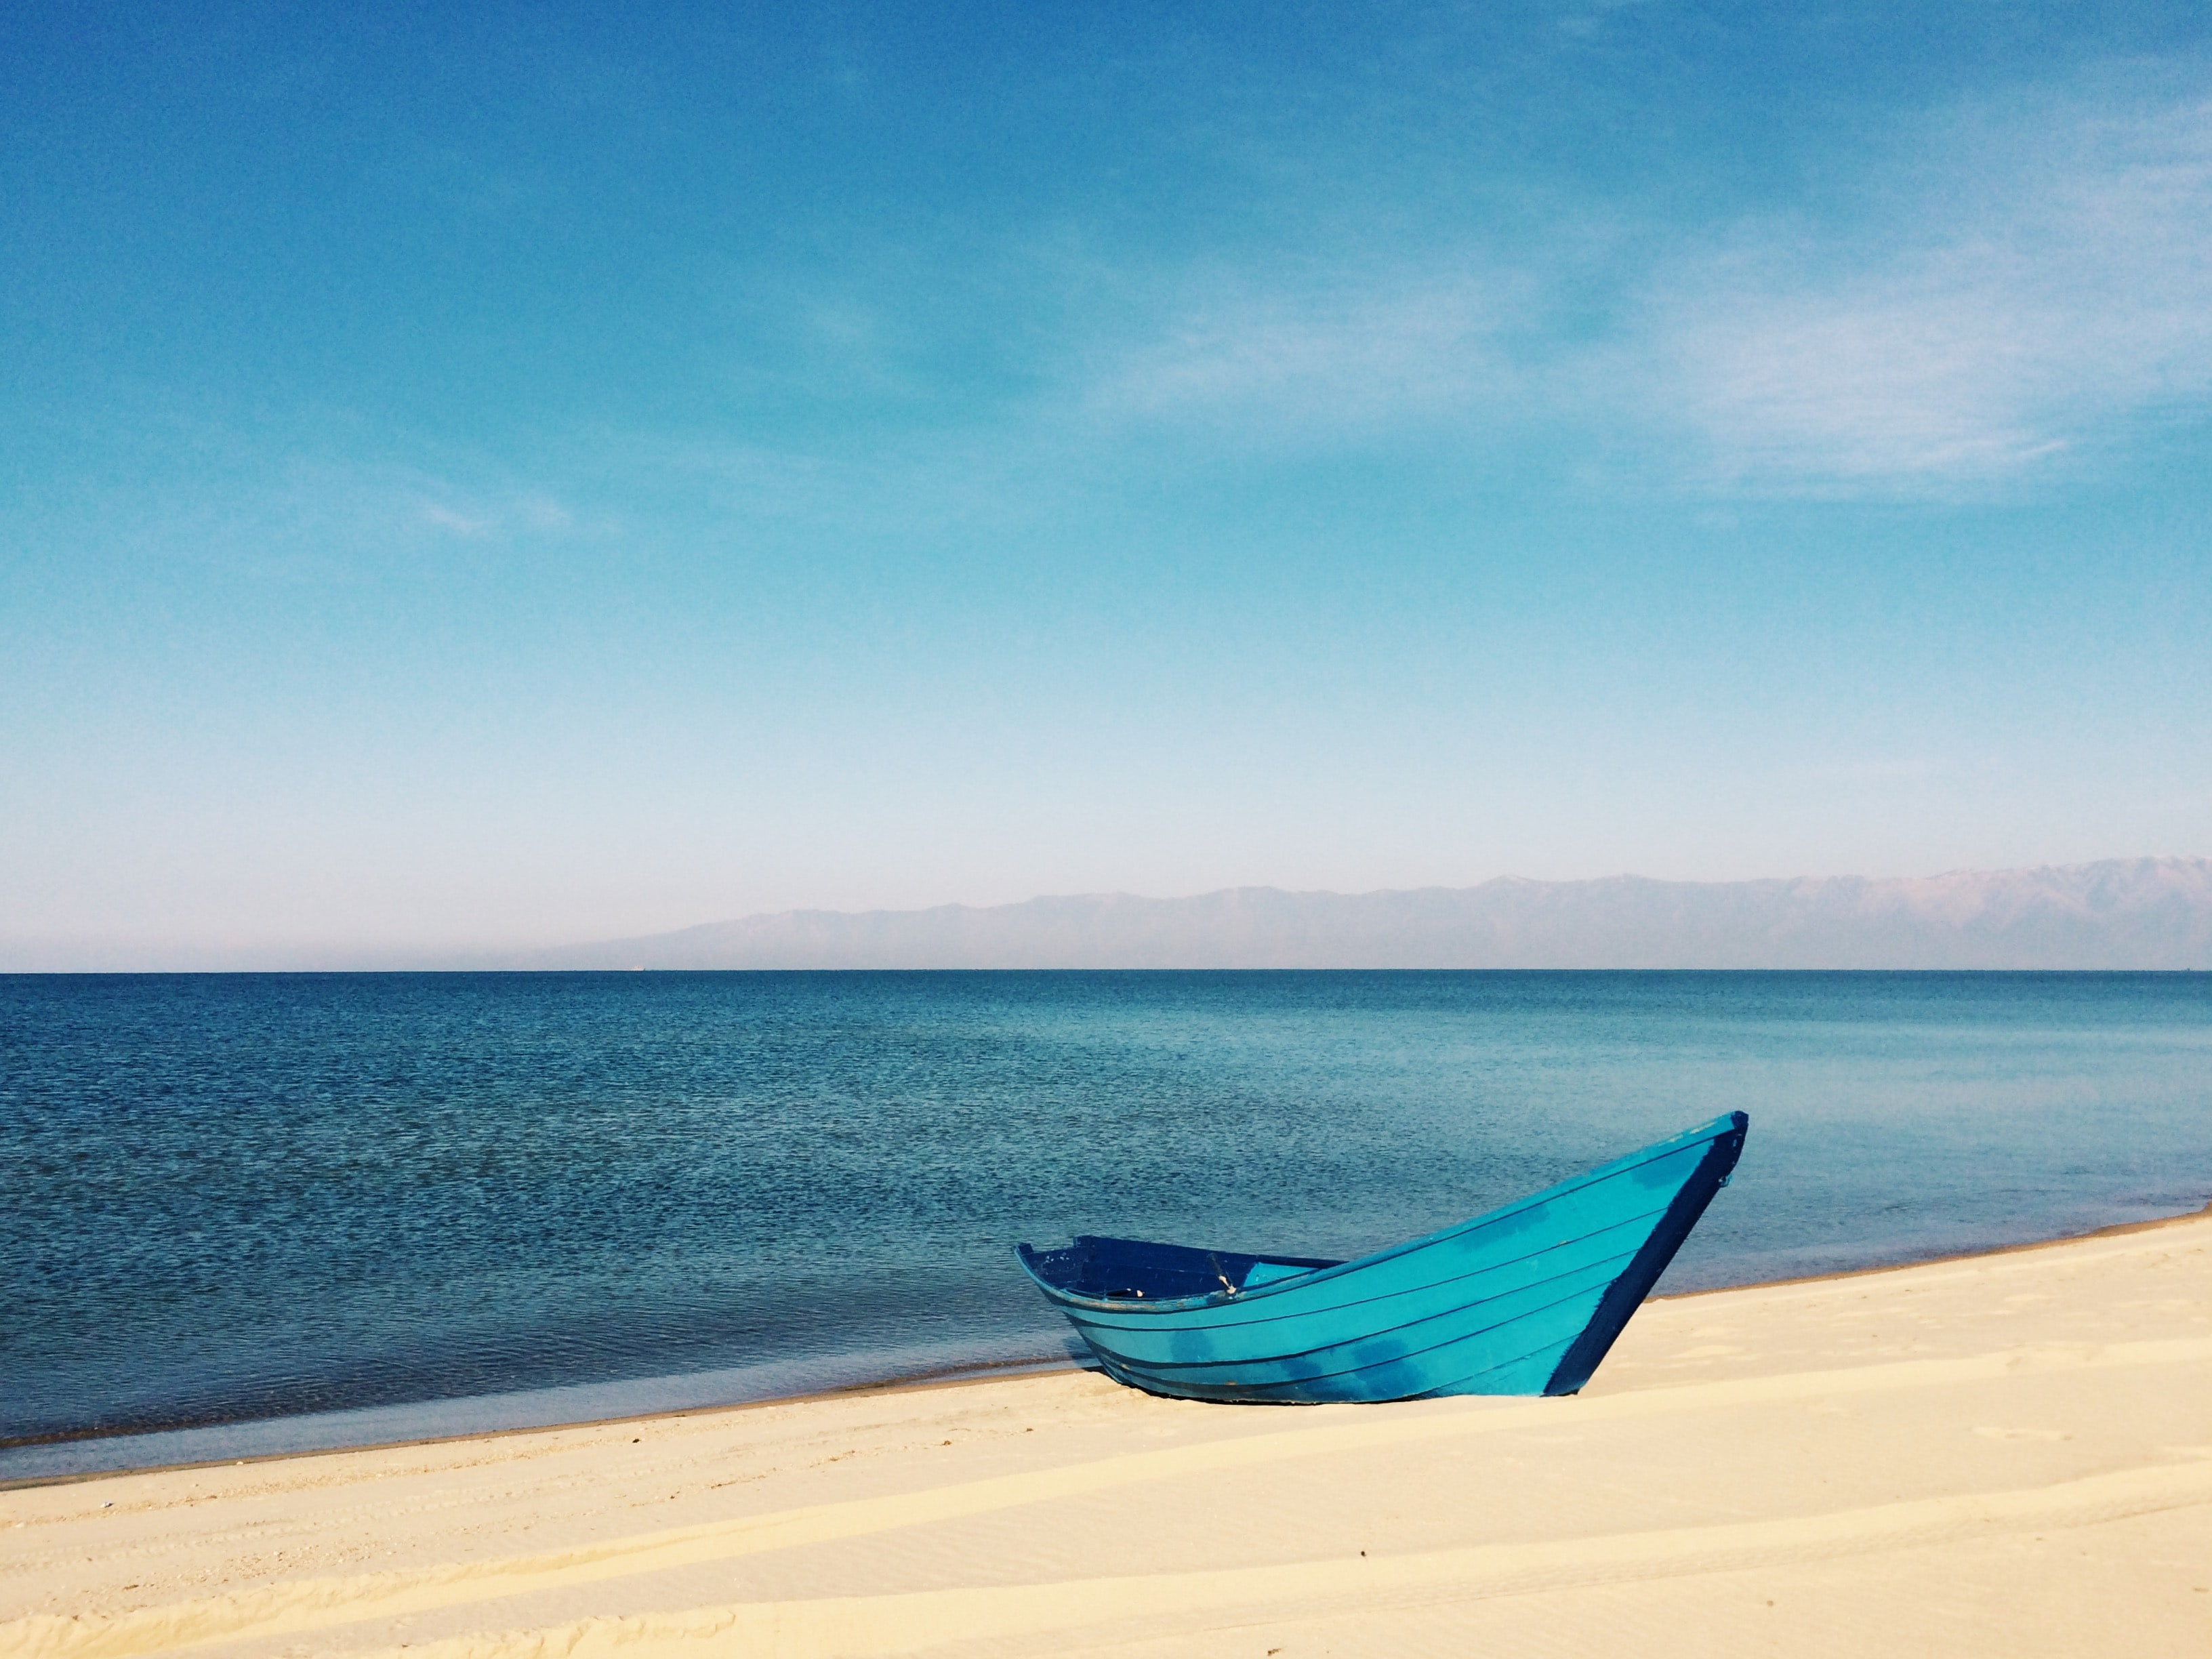 Landscape view of a canoe in front of a large blue sea in a  beach